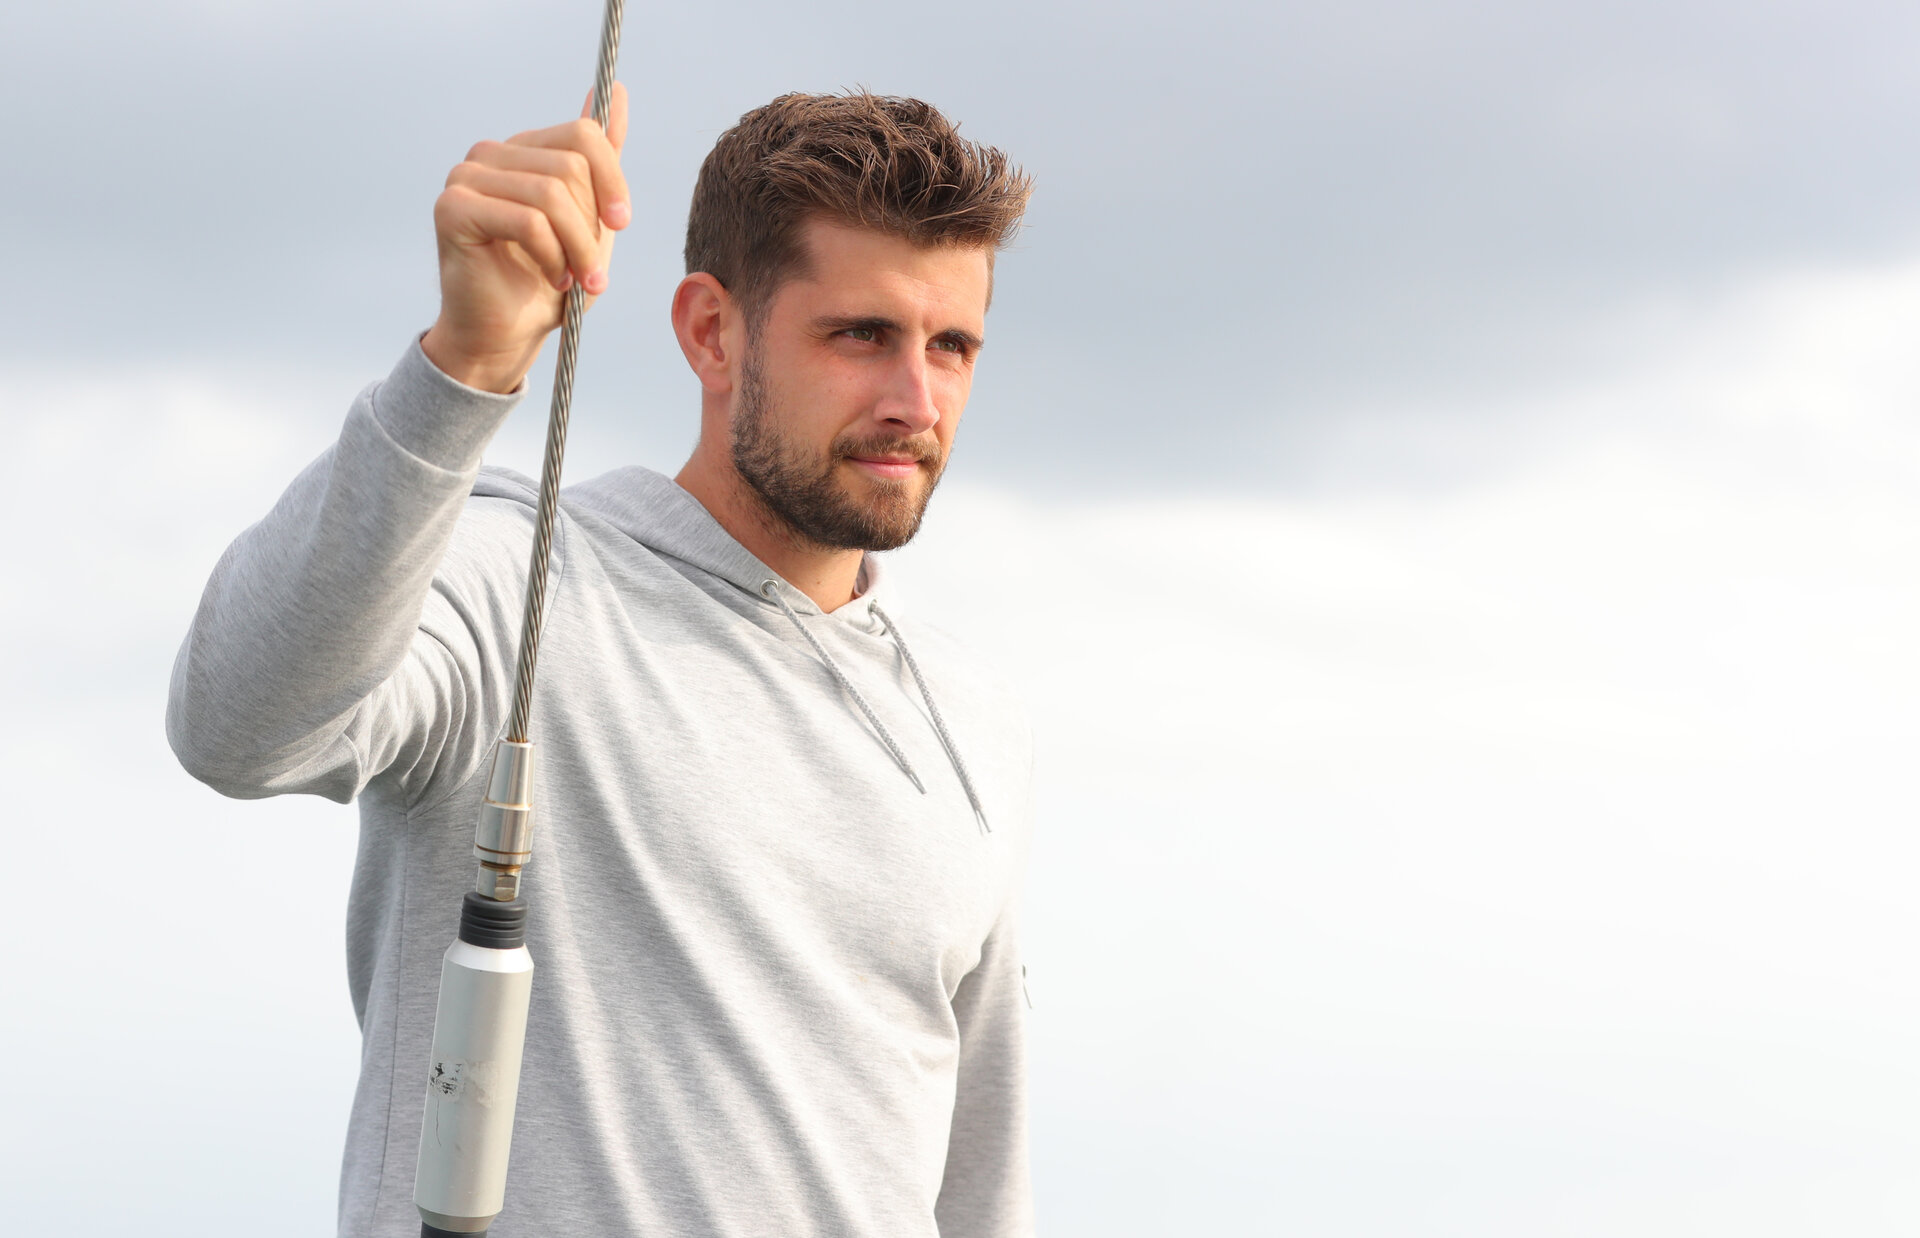 SOUTHAMPTON, ENGLAND - AUGUST 30: Jack Stephens during a photoshoot for Southampton FC, on August 30, 2018 in Southampton, England. (Photo by Matt Watson/Southampton FC via Getty Images)